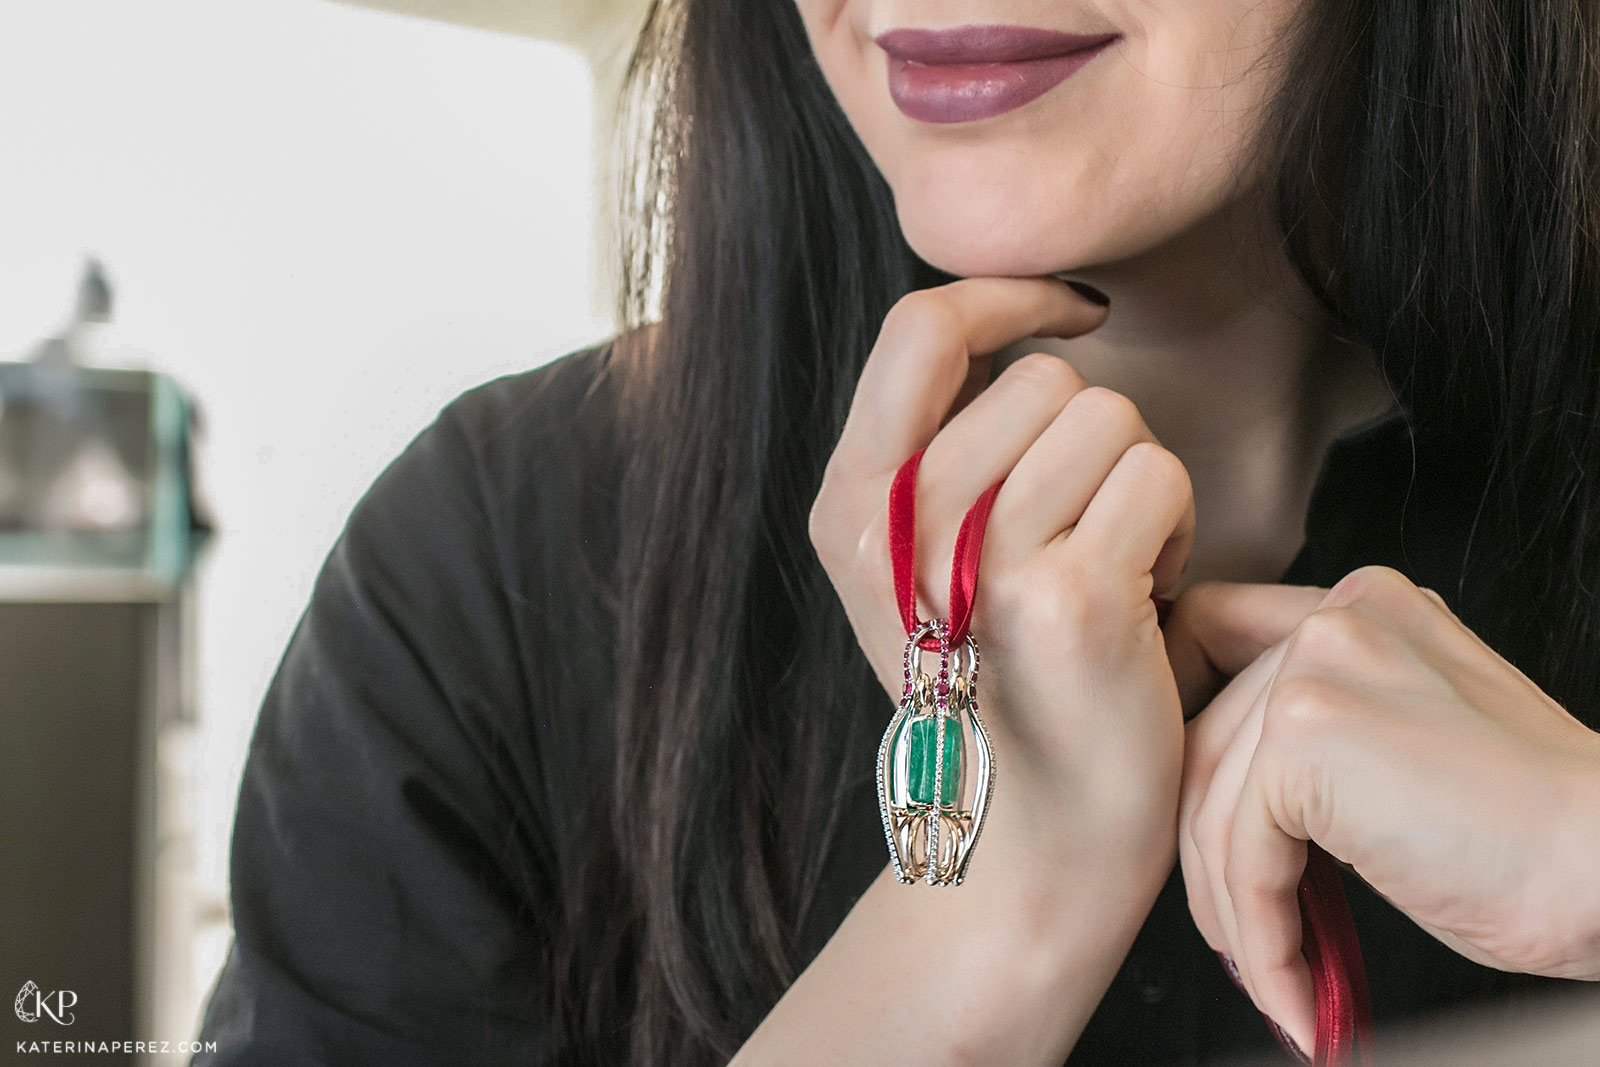 Sergey Korolyov's 'Symbols of Russia' pendant from Ringo's 'Matrena de Ural' collection with 18.04 carat Ural Mountain emerald, rubies and diamonds in white and rose gold